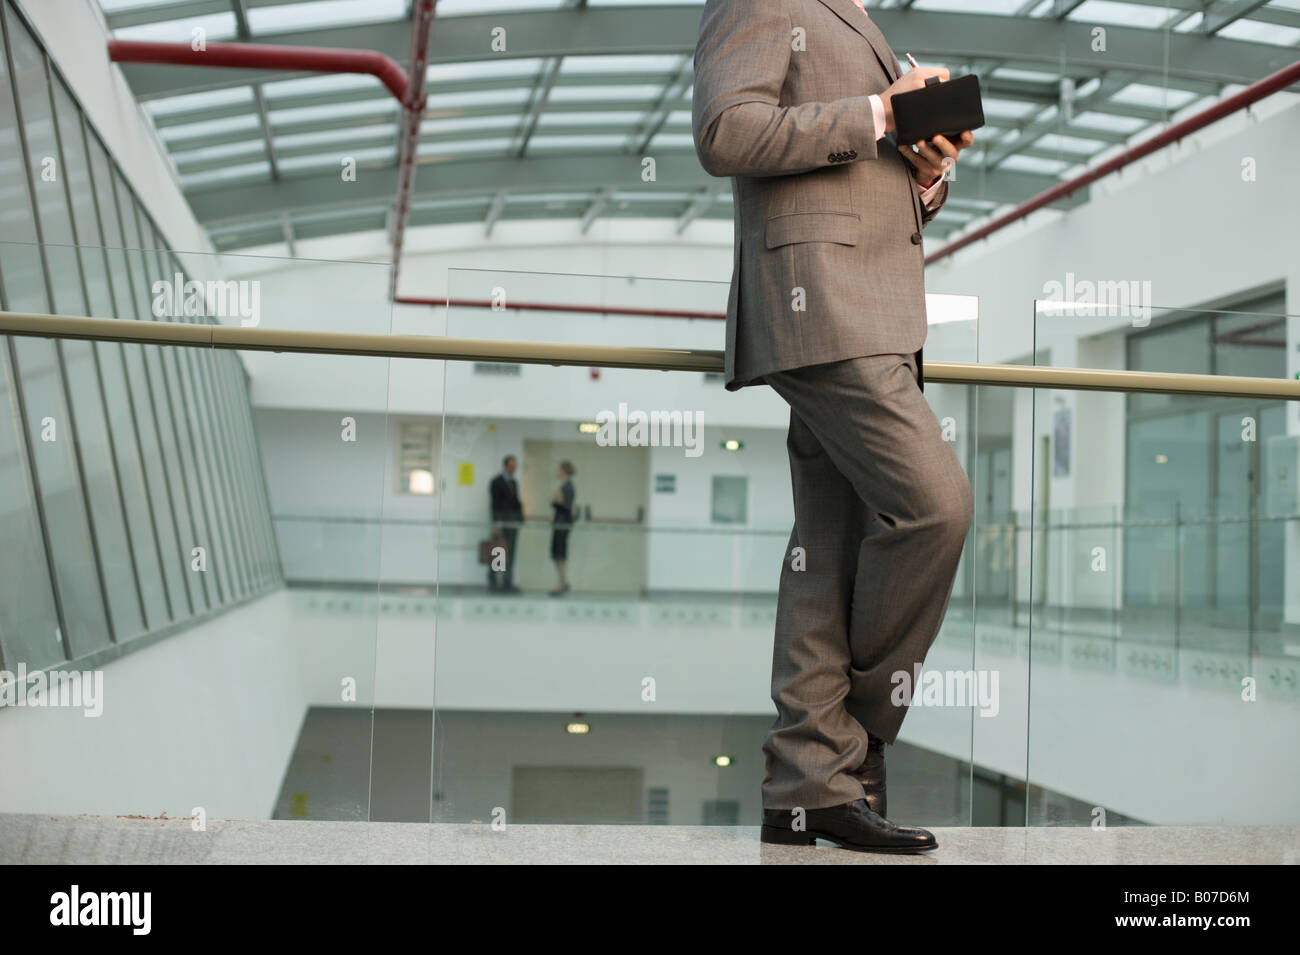 Businessman making notes in an office building - Stock Image